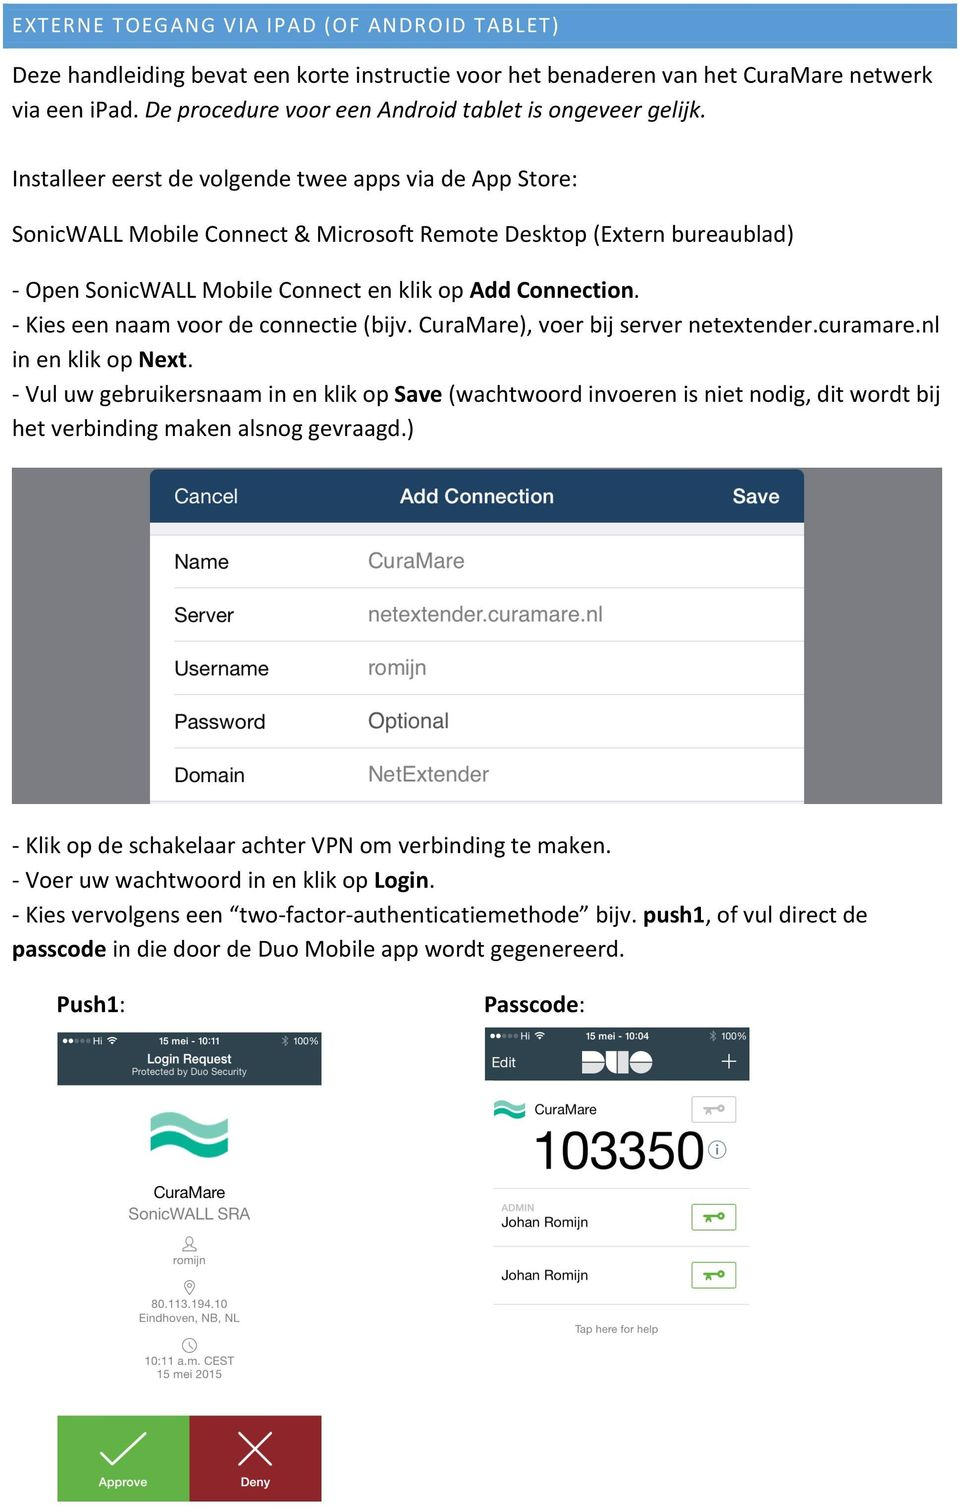 Installeer eerst de volgende twee apps via de App Store: SonicWALL Mobile Connect & Microsoft Remote Desktop (Extern bureaublad) - Open SonicWALL Mobile Connect en klik op Add Connection.